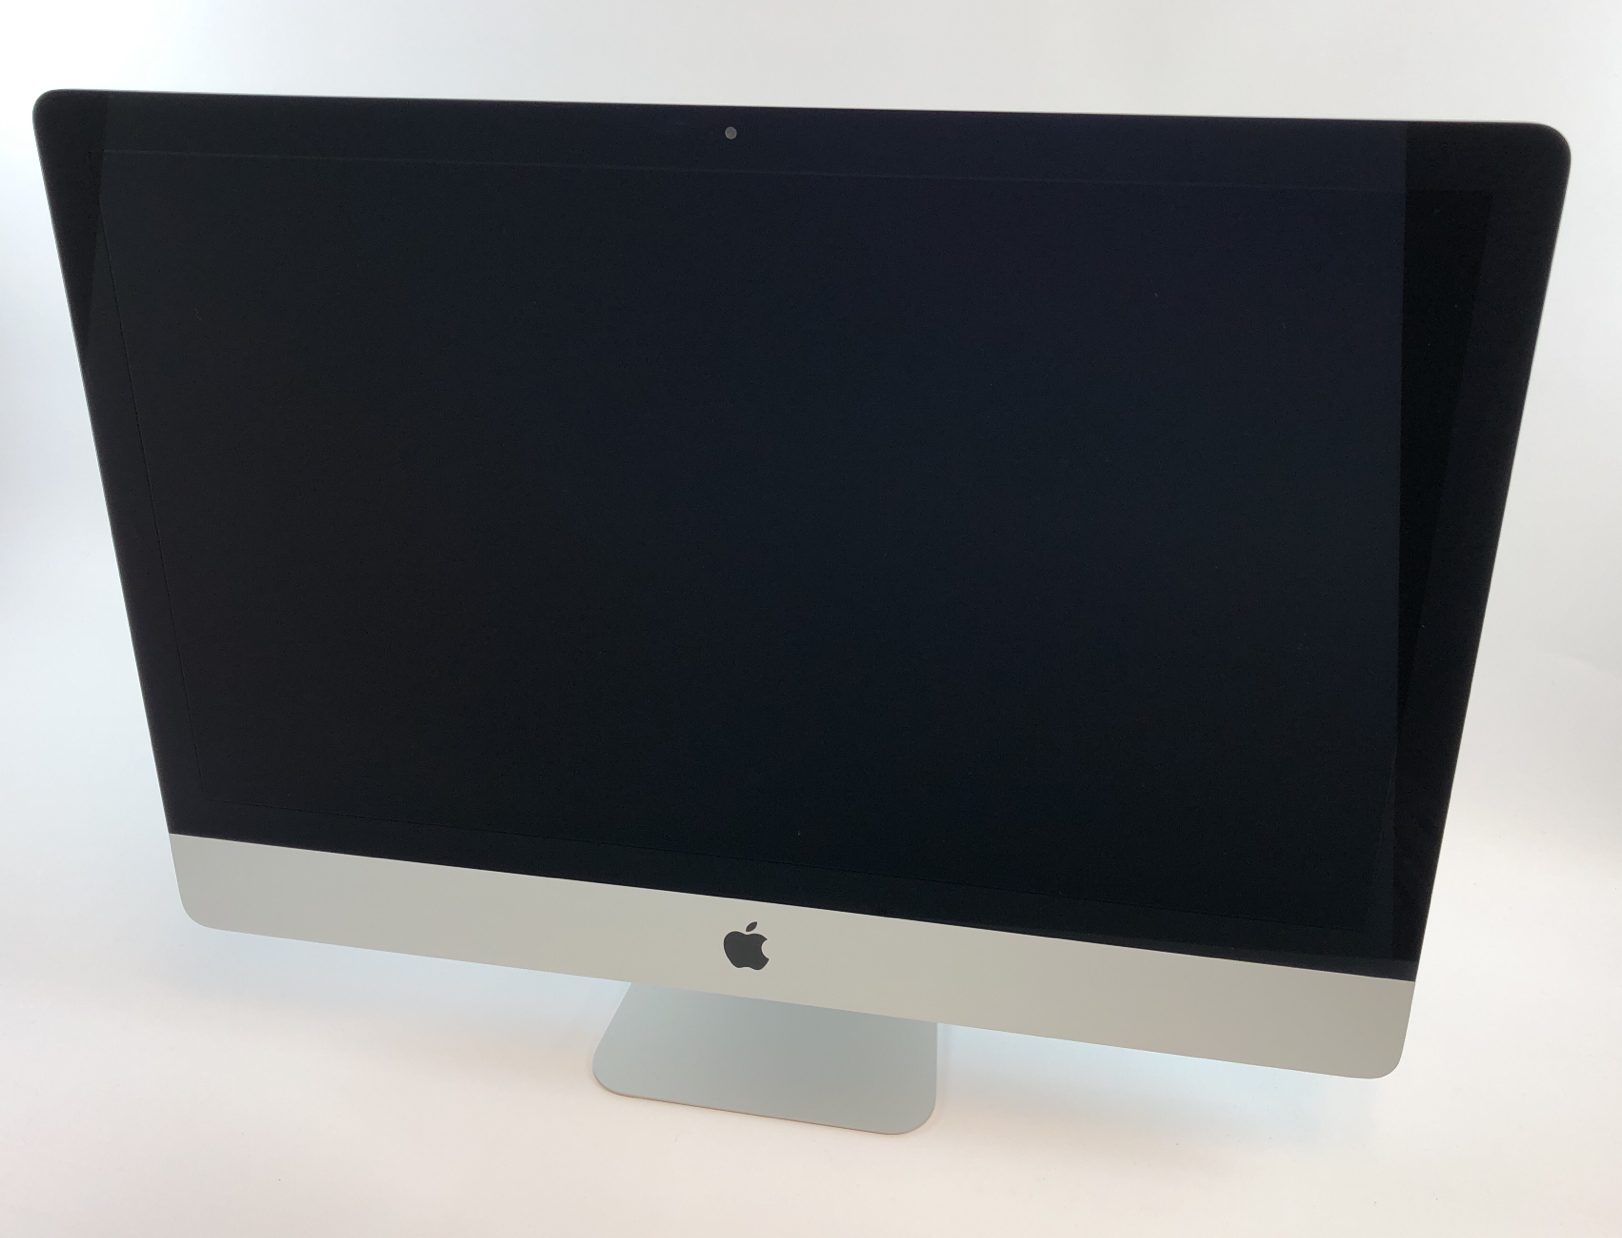 "iMac 27"" Retina 5K Late 2015 (Intel Quad-Core i5 3.2 GHz 16 GB RAM 256 GB SSD), Intel Quad-Core i5 3.2 GHz, 16 GB RAM, 256 GB SSD, Kuva 1"